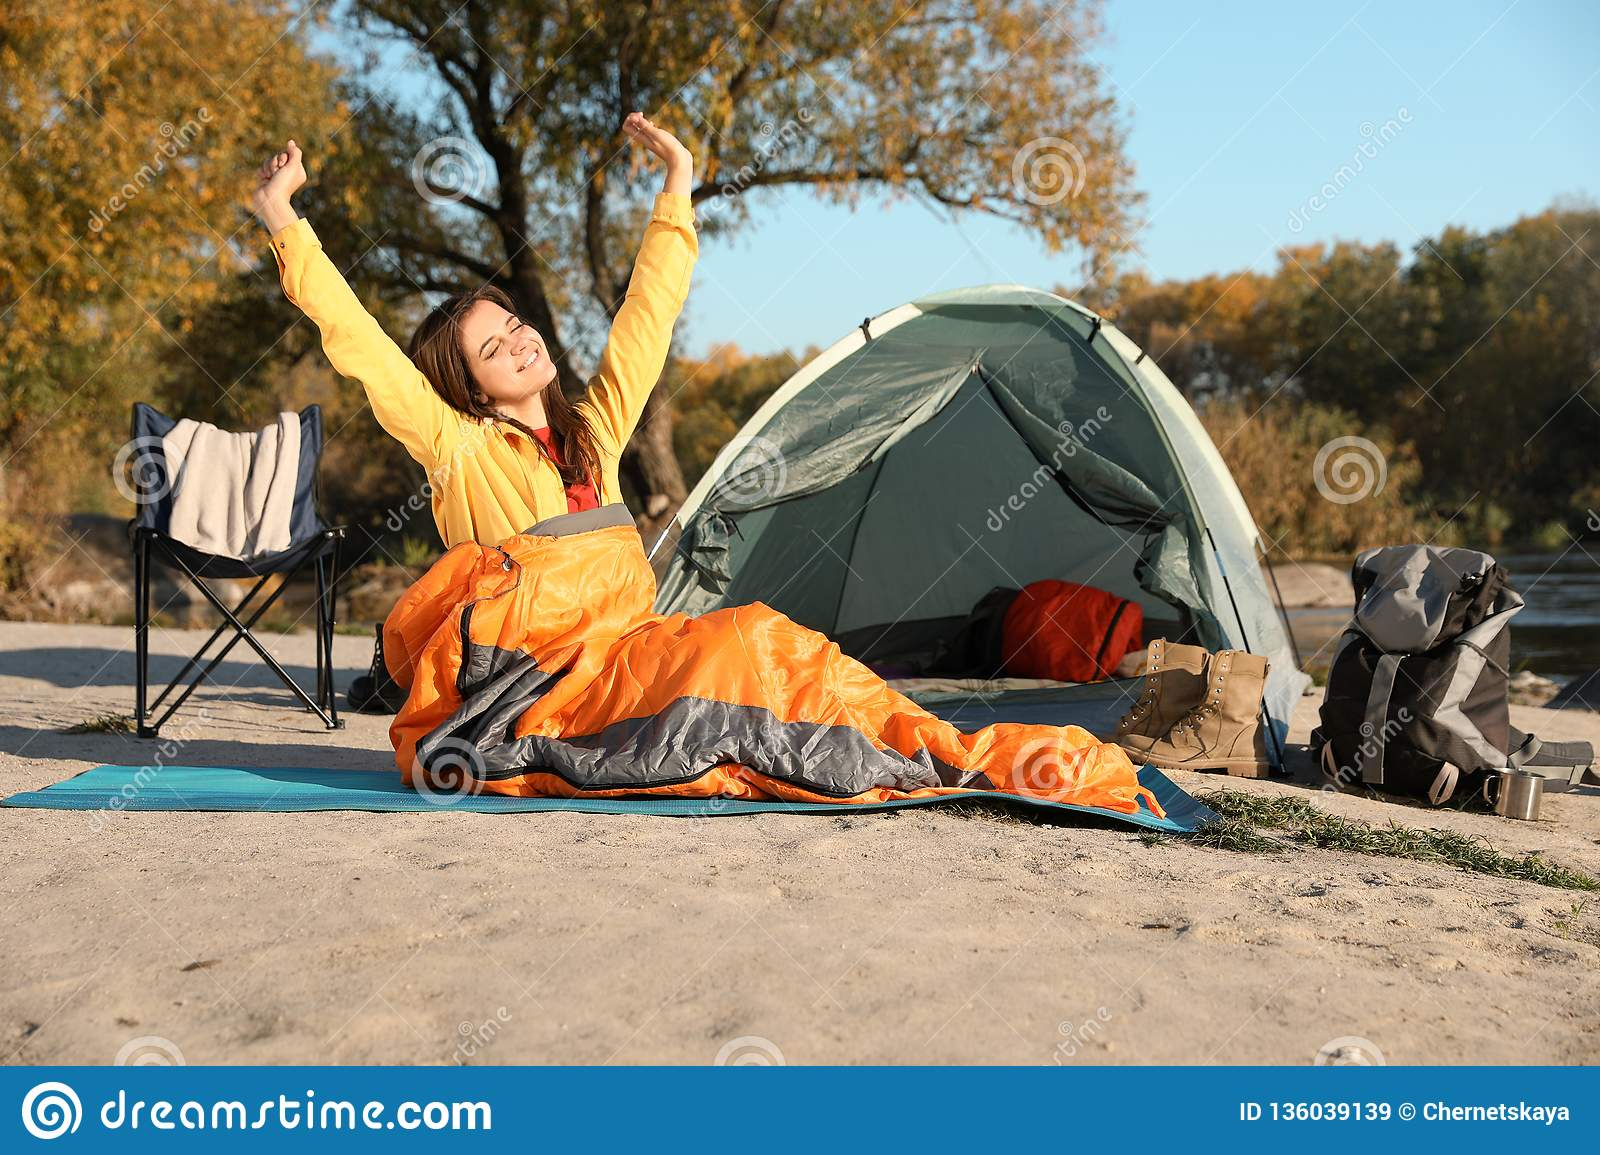 Young woman stretching in sleeping bag near camping tent